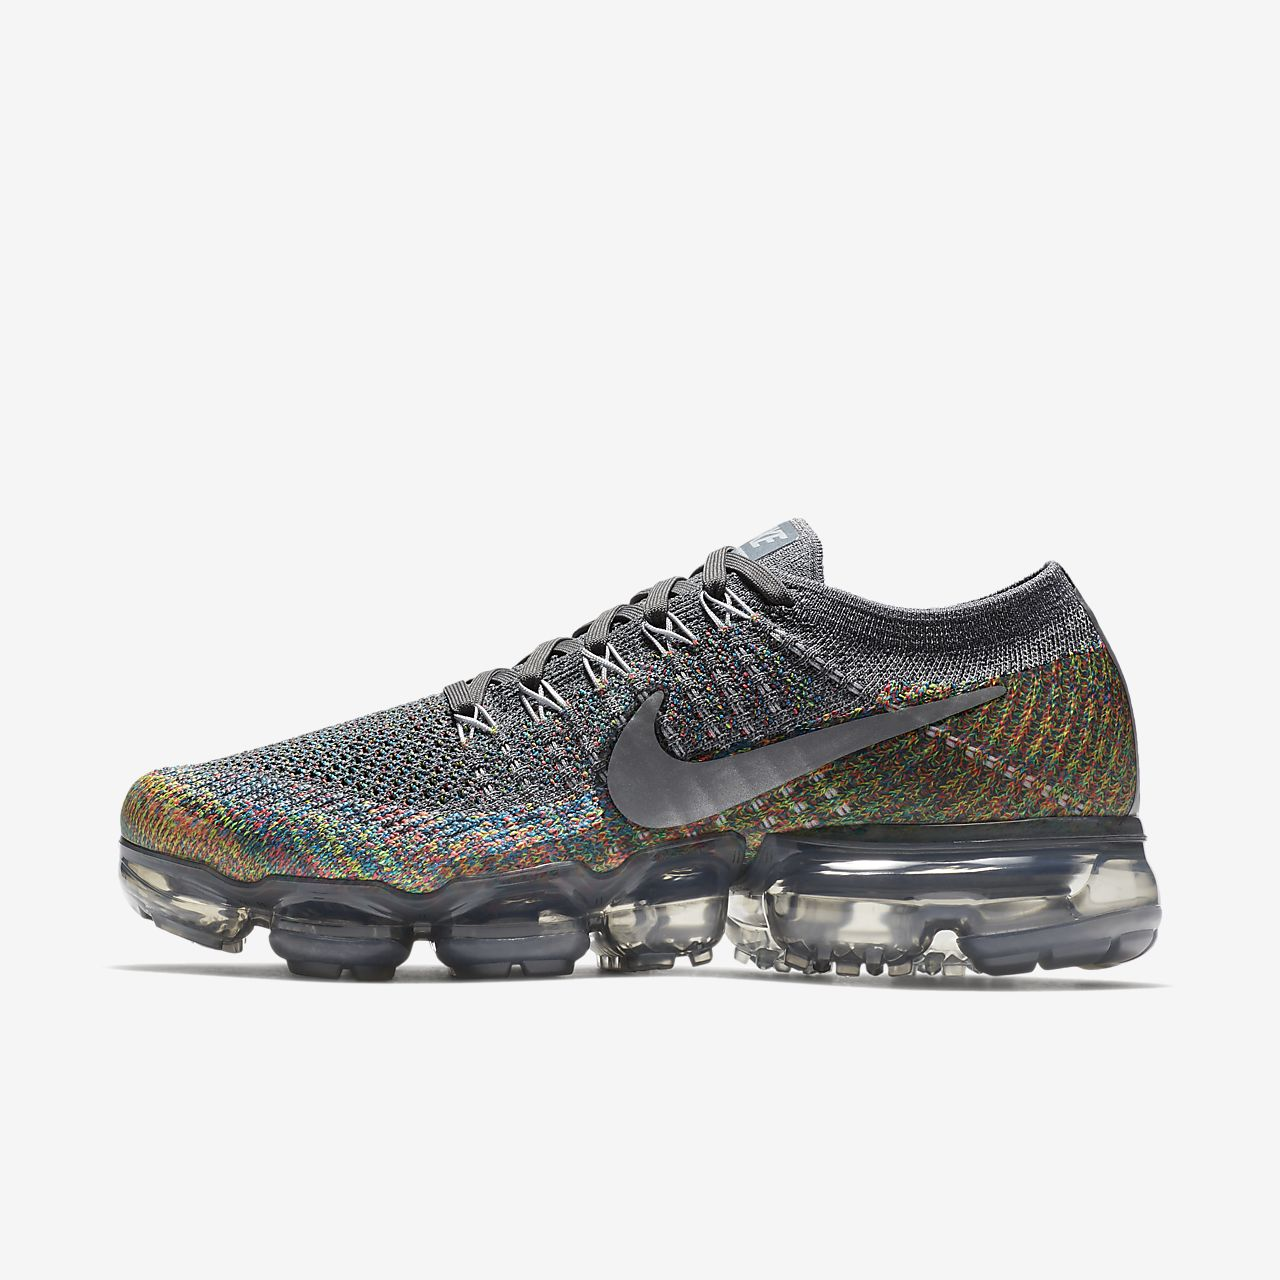 stikkontakt sko all rød nike air vapormax